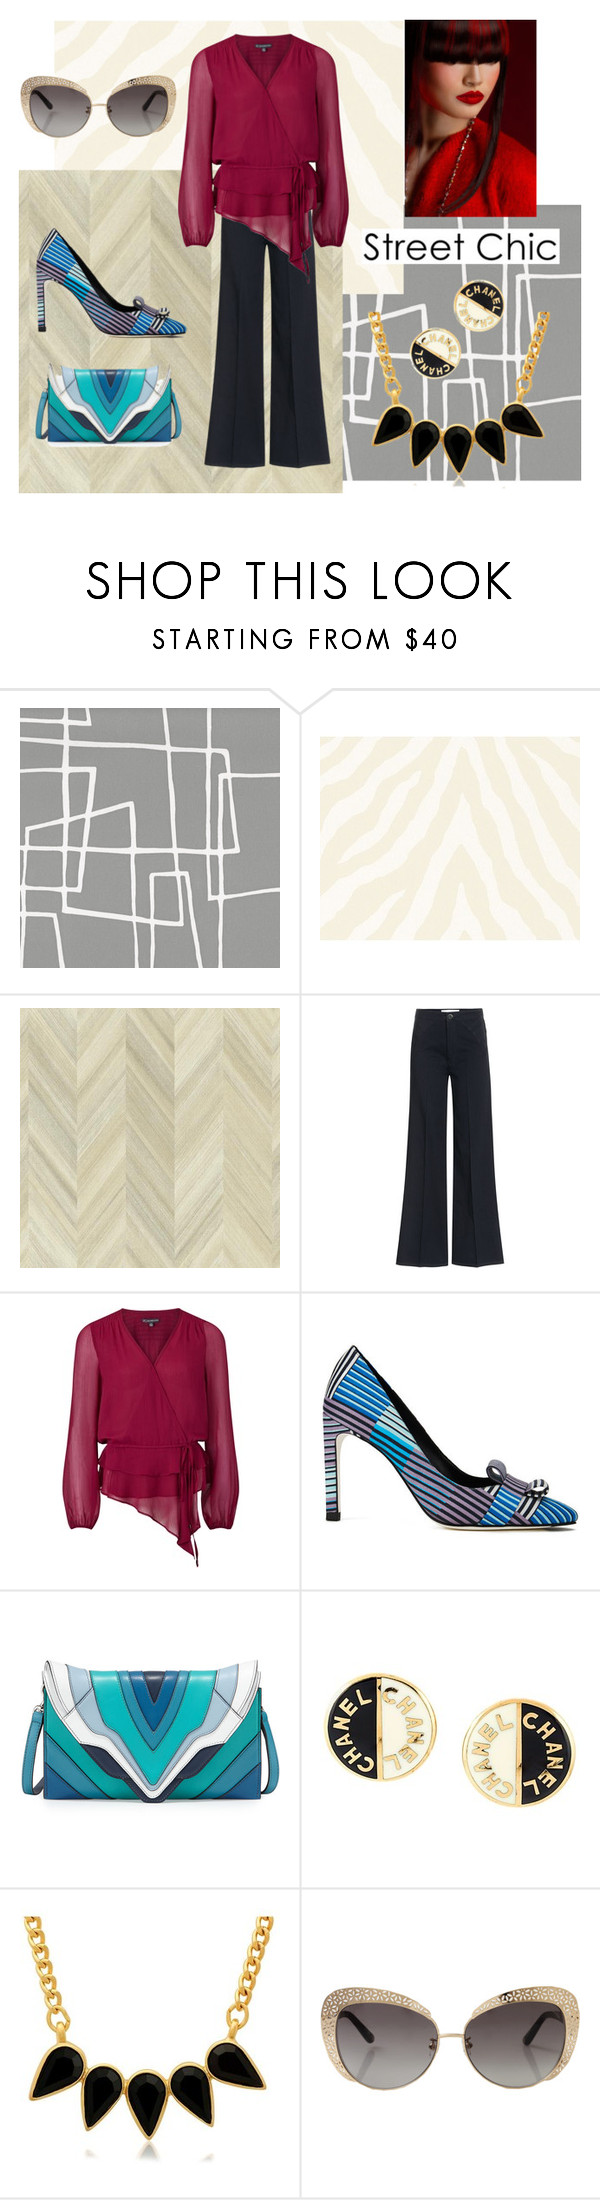 """Chiffon Wrap Blouse"" by dana-debanks ❤ liked on Polyvore featuring Graham & Brown, Thibaut, York Wallcoverings, dVb Victoria Beckham, Adrianna Papell, Paul Smith, Elena Ghisellini, Chanel, George & Laurel and Oscar de la Renta"